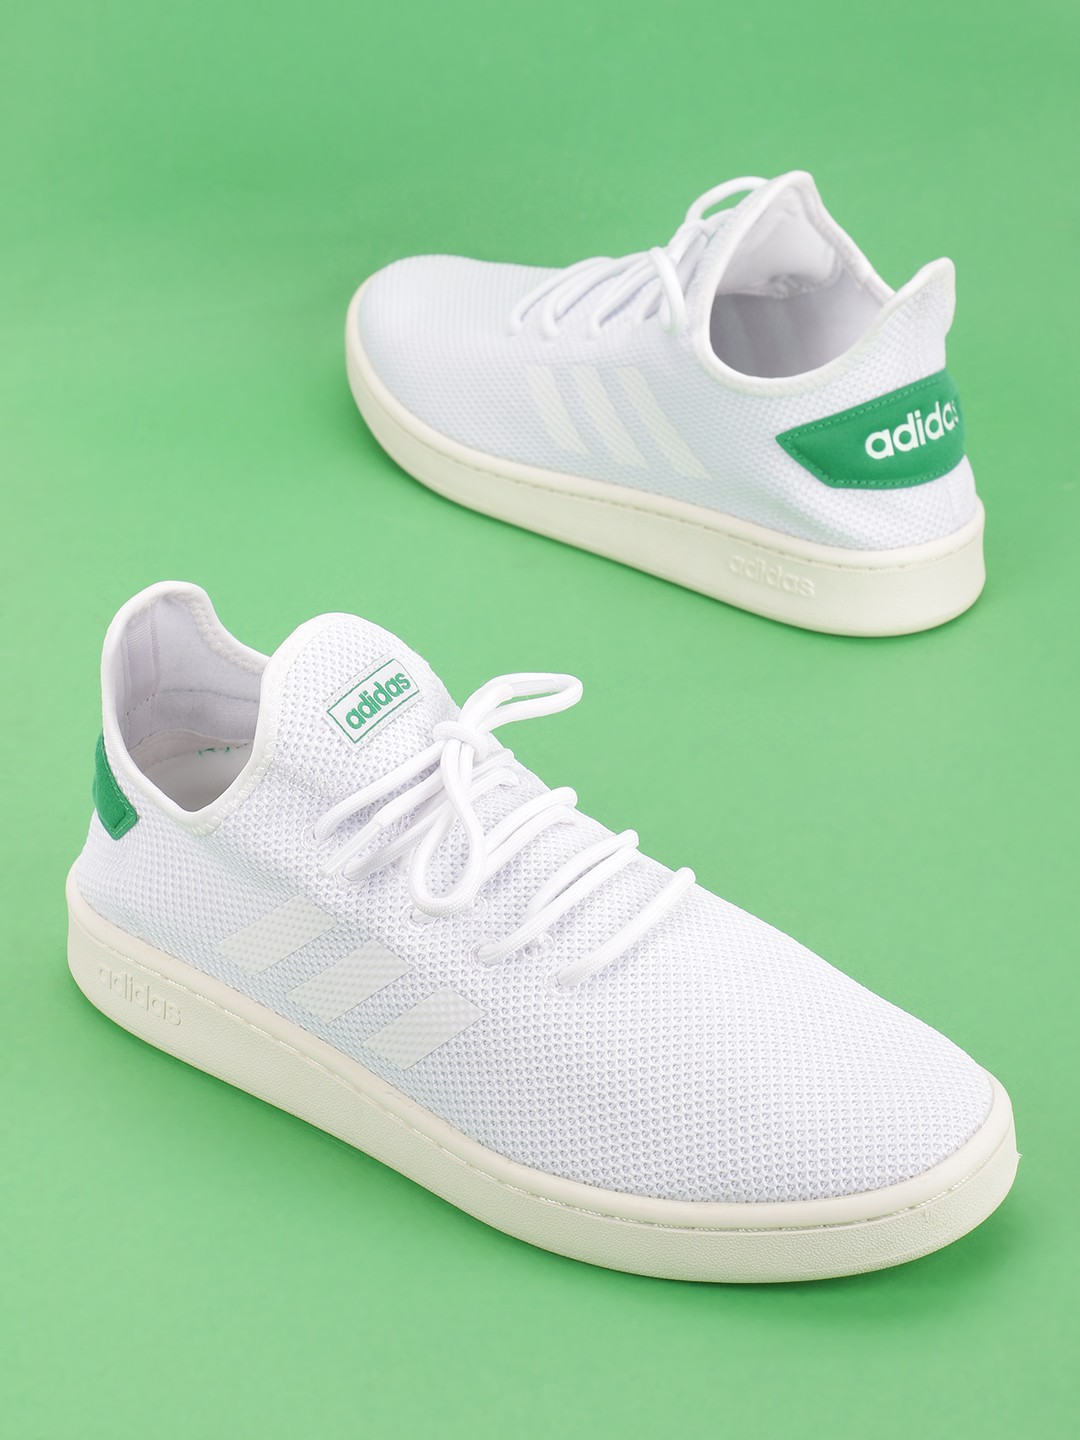 Adidas White Court Adapt Casual Shoes 1